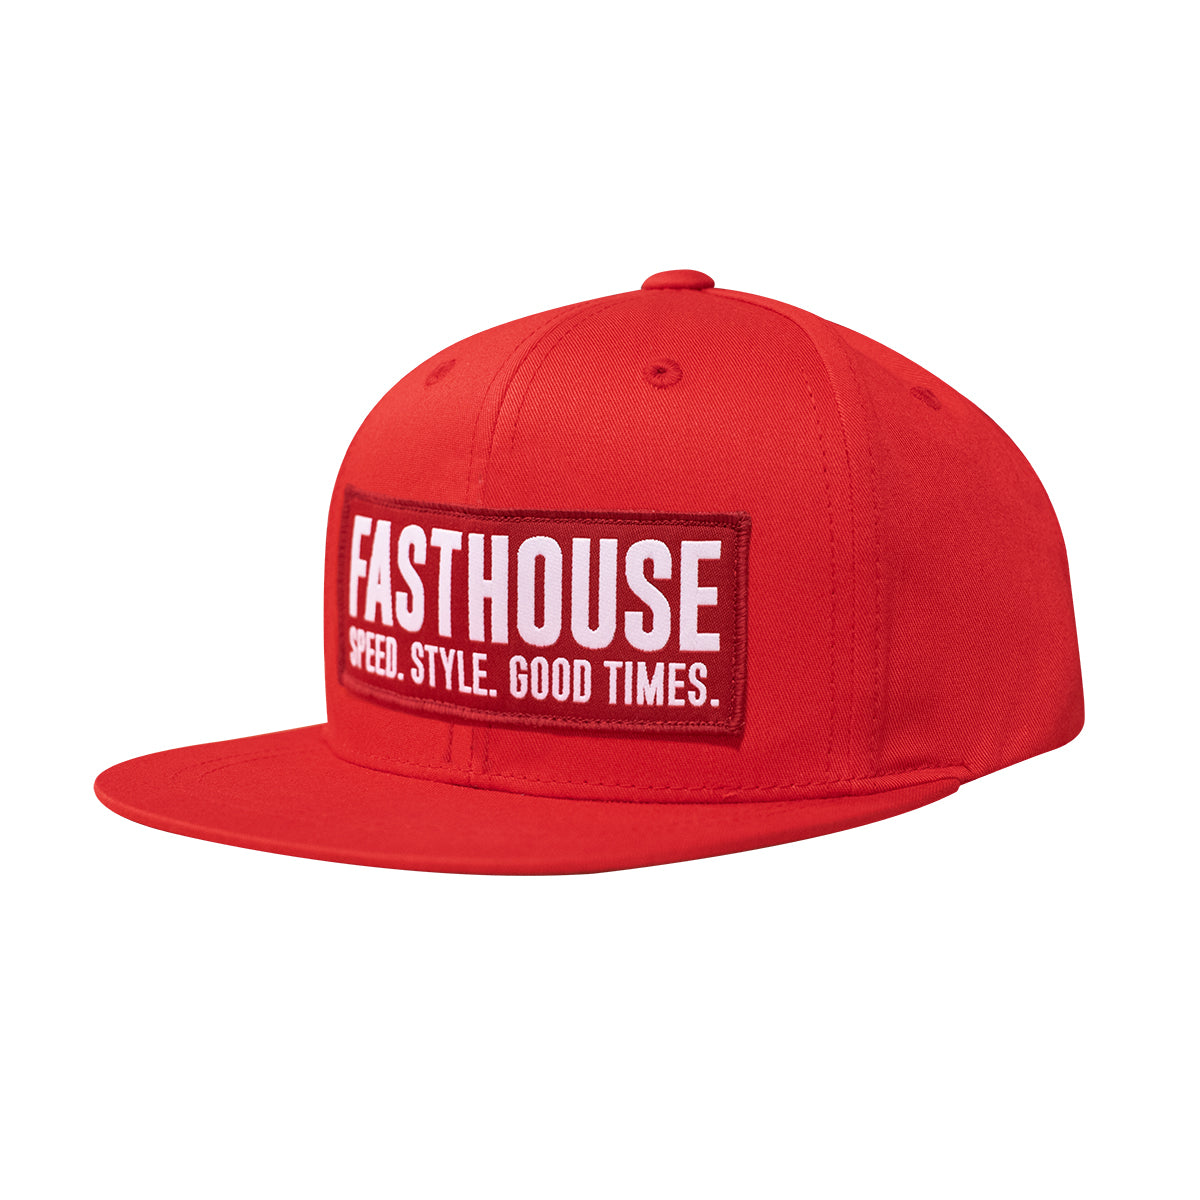 Fasthouse - Blockhouse Youth Hat - Red